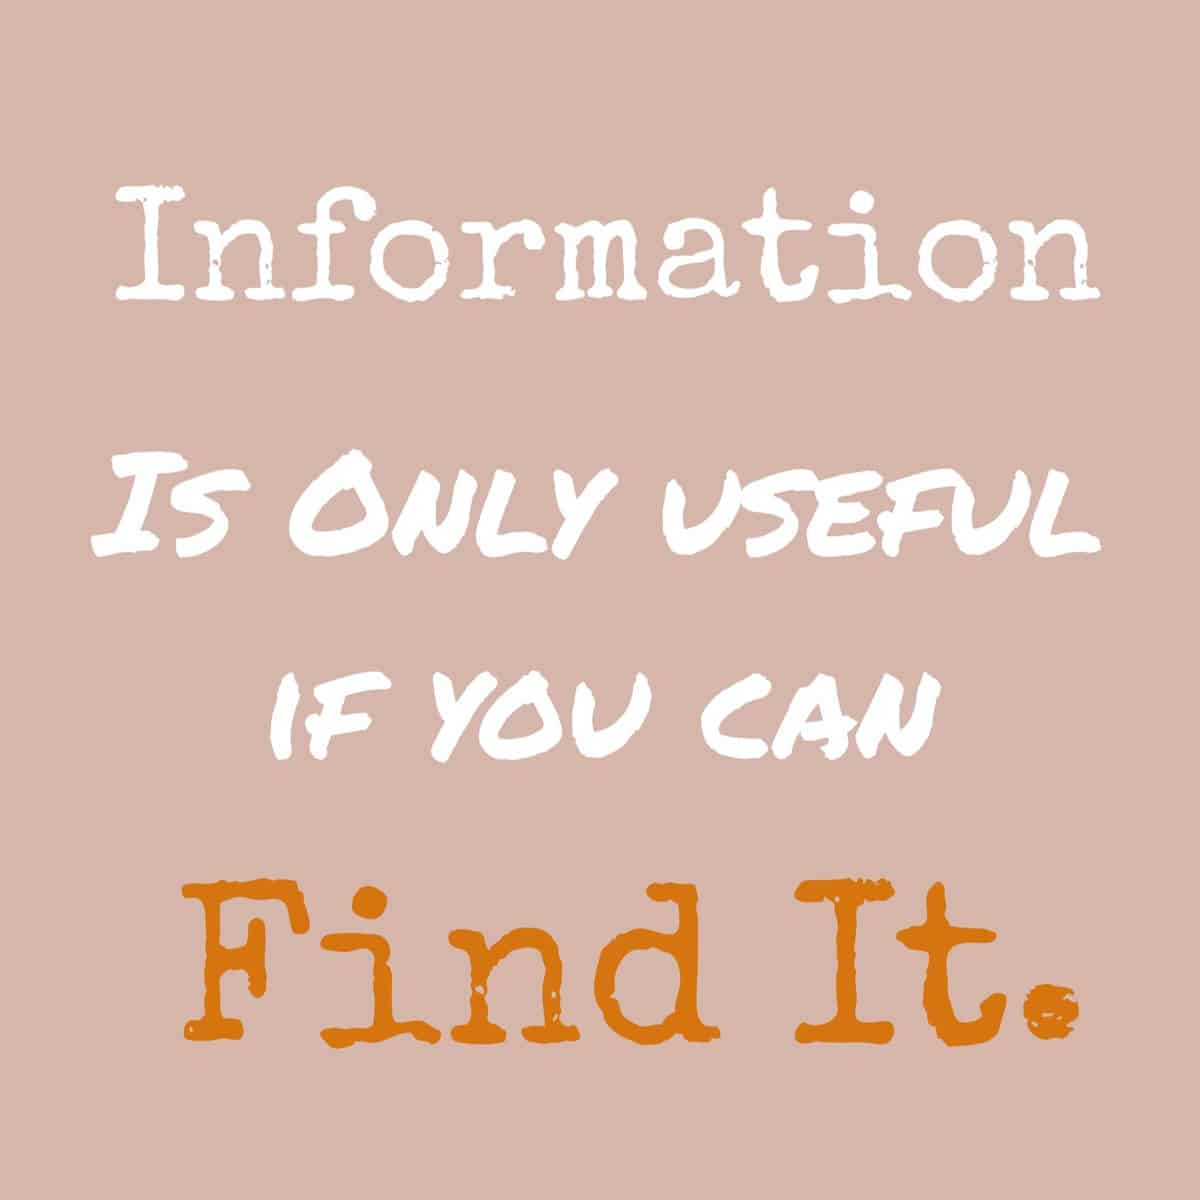 health information systems essay Previous answers to this question 27: 16 7 3 0 1 health information technology system identify a health information technology system, explain how it improves healthcare outcomes.